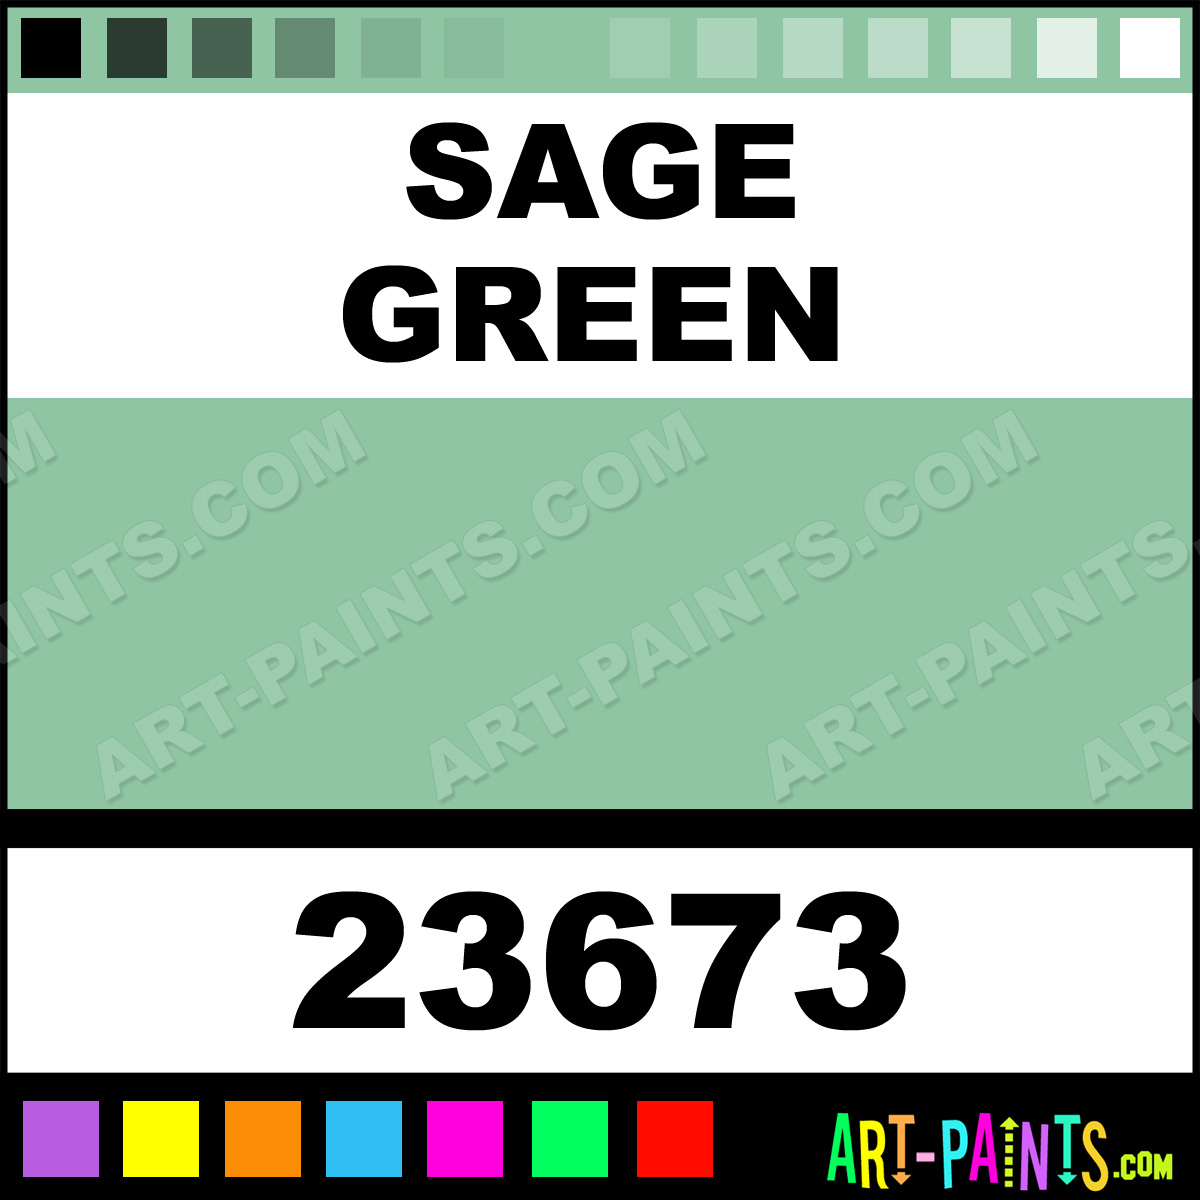 Sage Green Artist Acrylic Paints - 23673 - Sage Green Paint, Sage ...